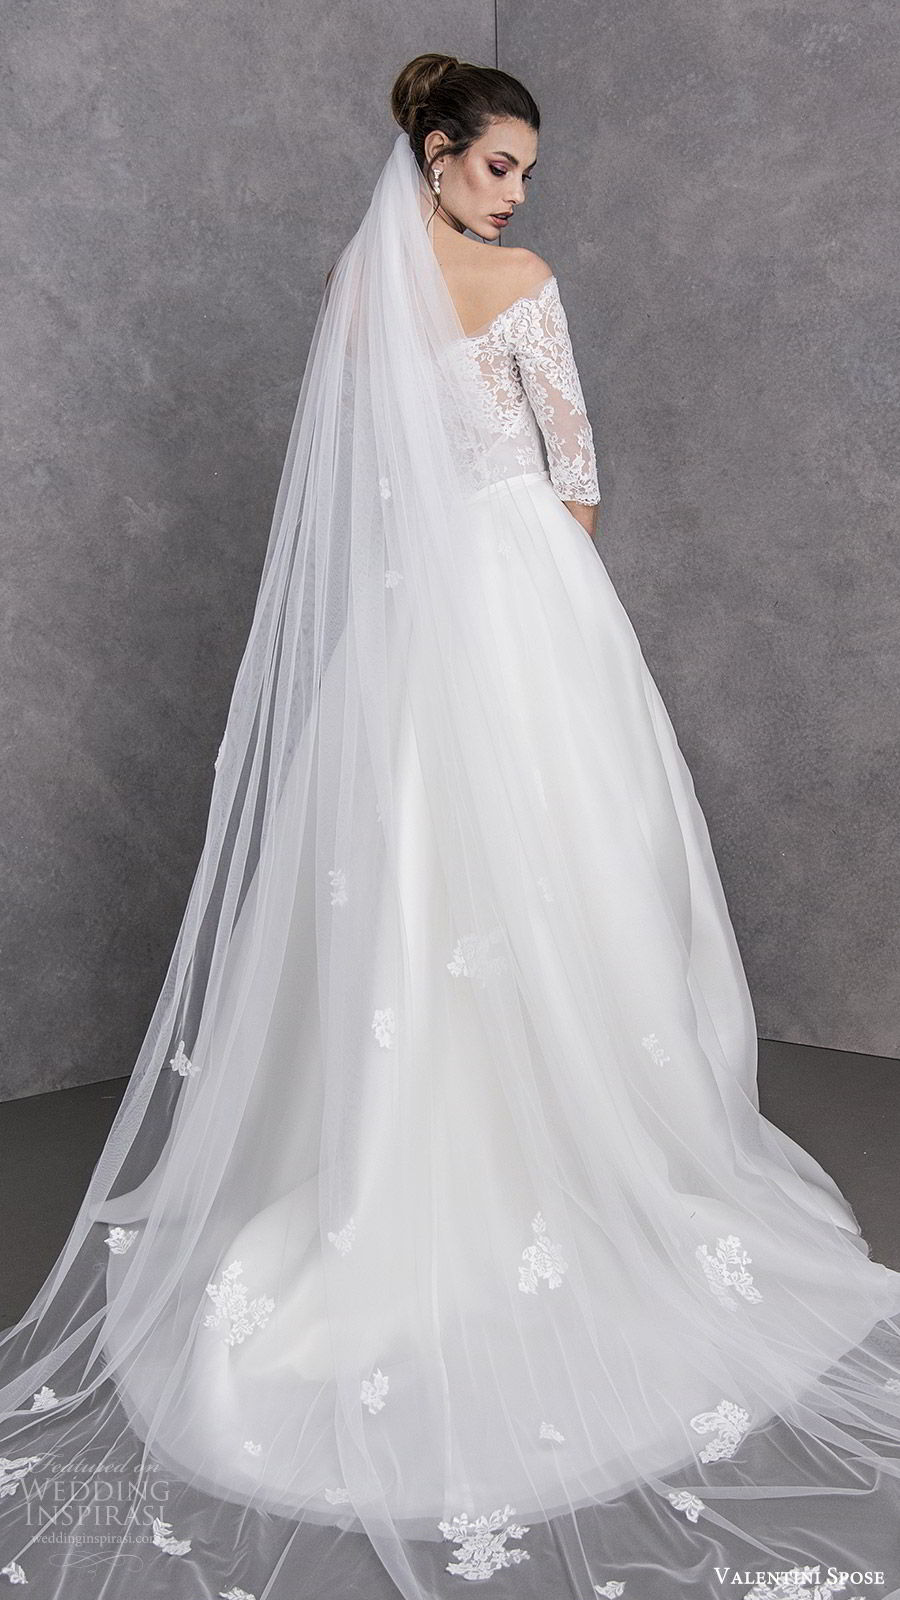 valentini spose spring 2020 bridal off shoulder illusion 3 quarter sleees lace bodice a line ball gown wedding dress (22) elegant princess romantic chapel train bv